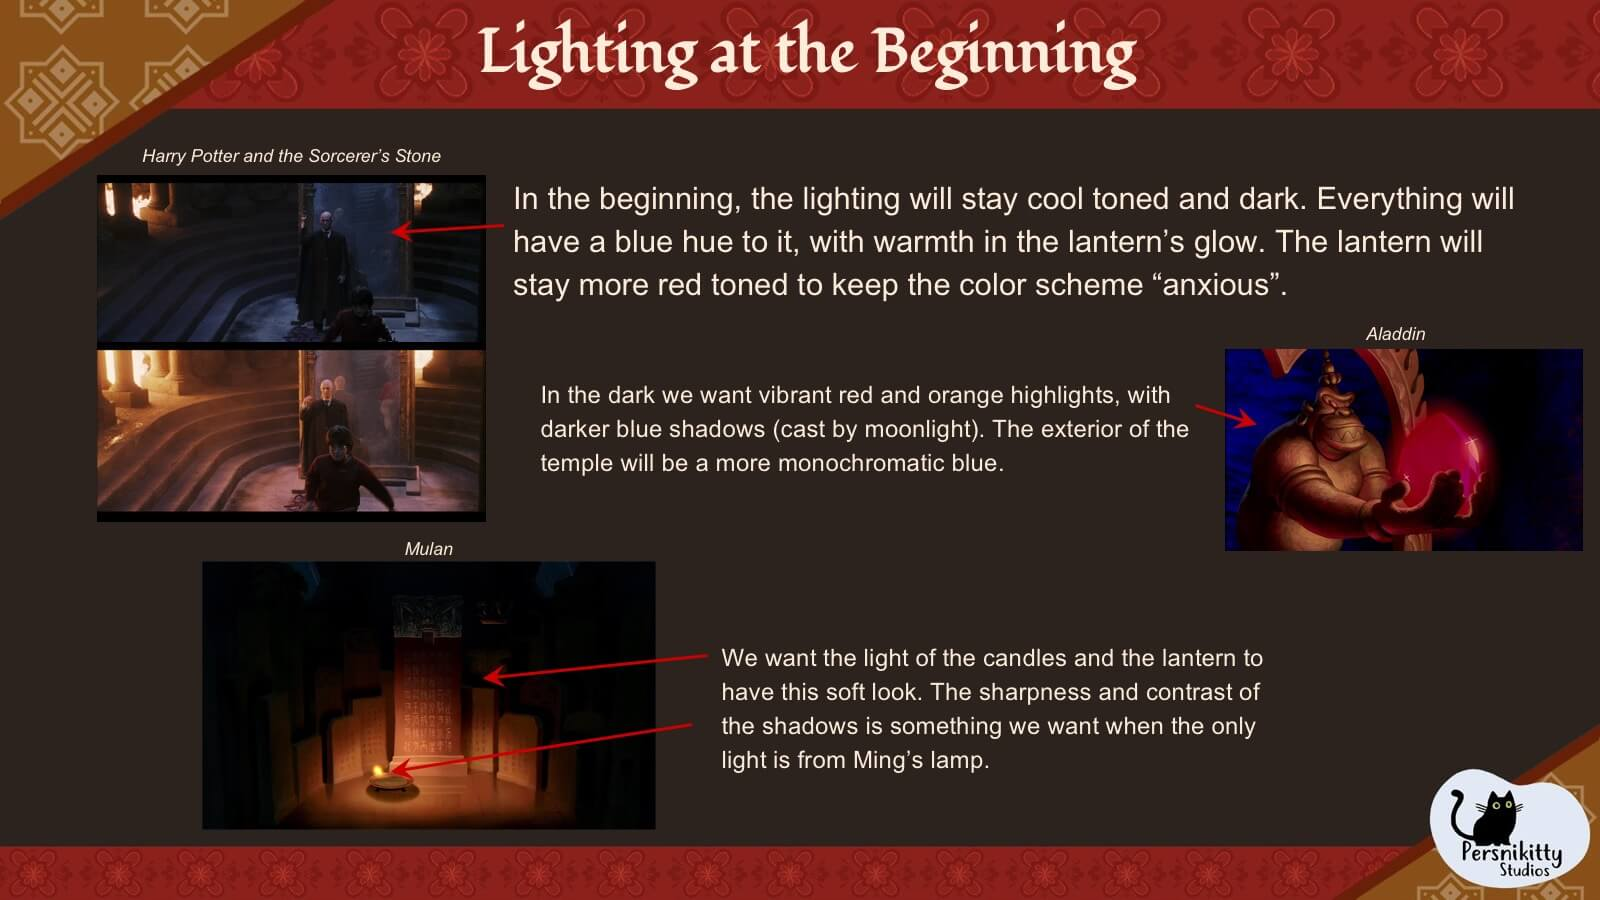 A slide displaying the visual references for lighting in the temple at the start of the film.